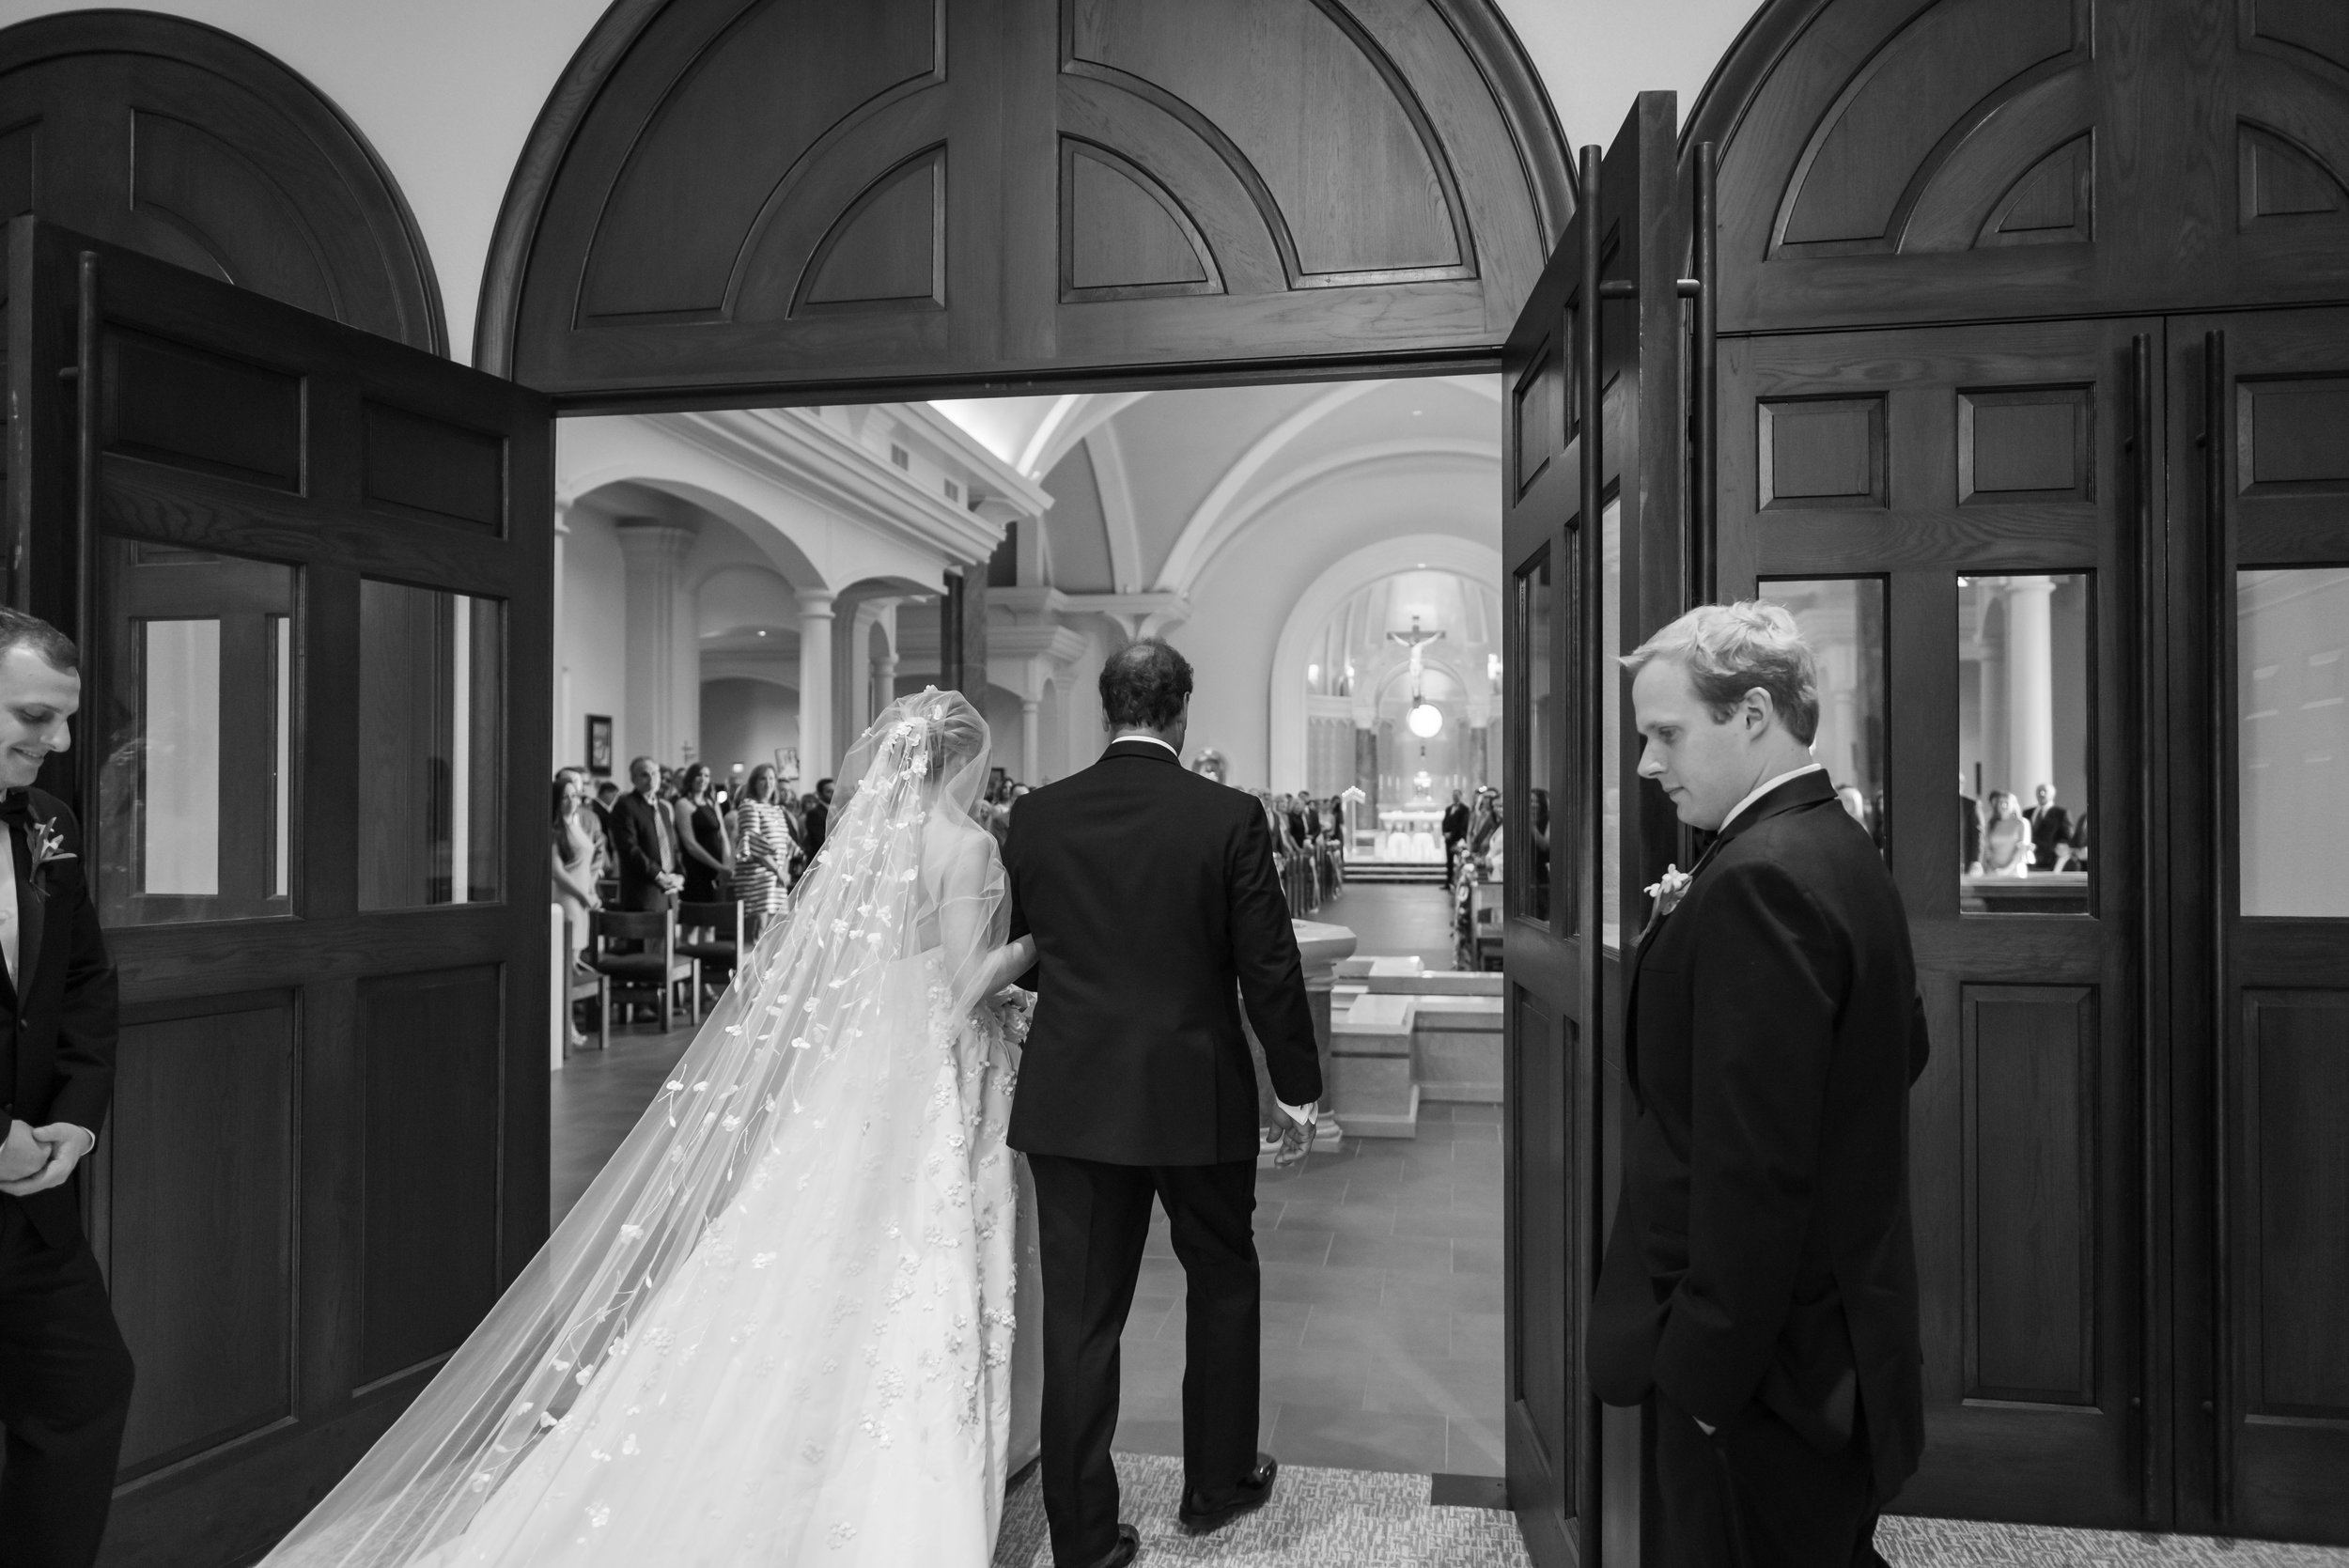 Southern Fete, Southern Wedding, St. Pius Catholic Church, Ceremony, Bride and her Father Walking, Jay Faugot Photography